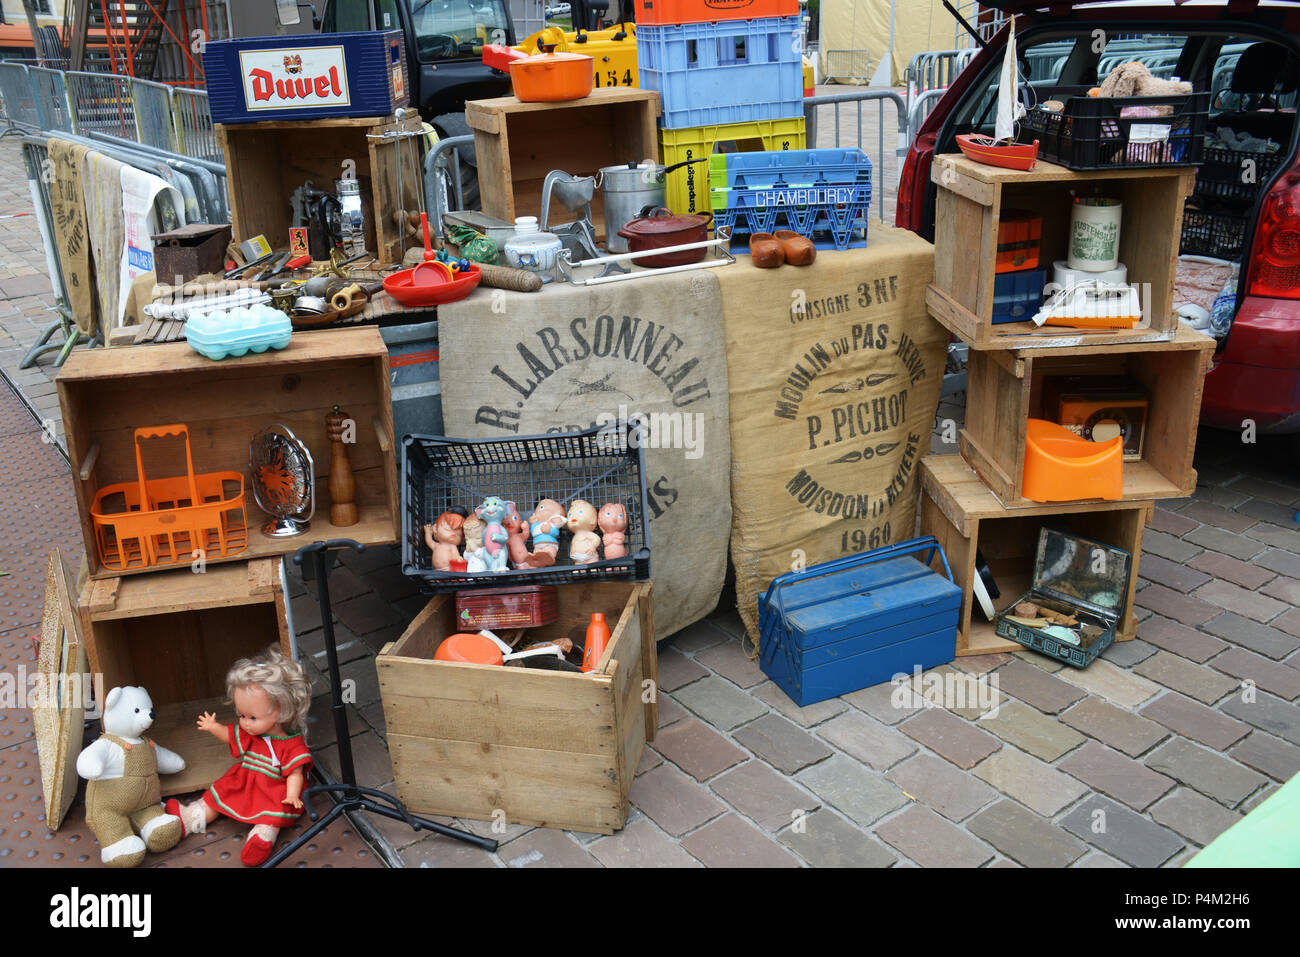 https www alamy com car boot sale france sell an items at the local sunday car boot sale in le mans french market image209424130 html